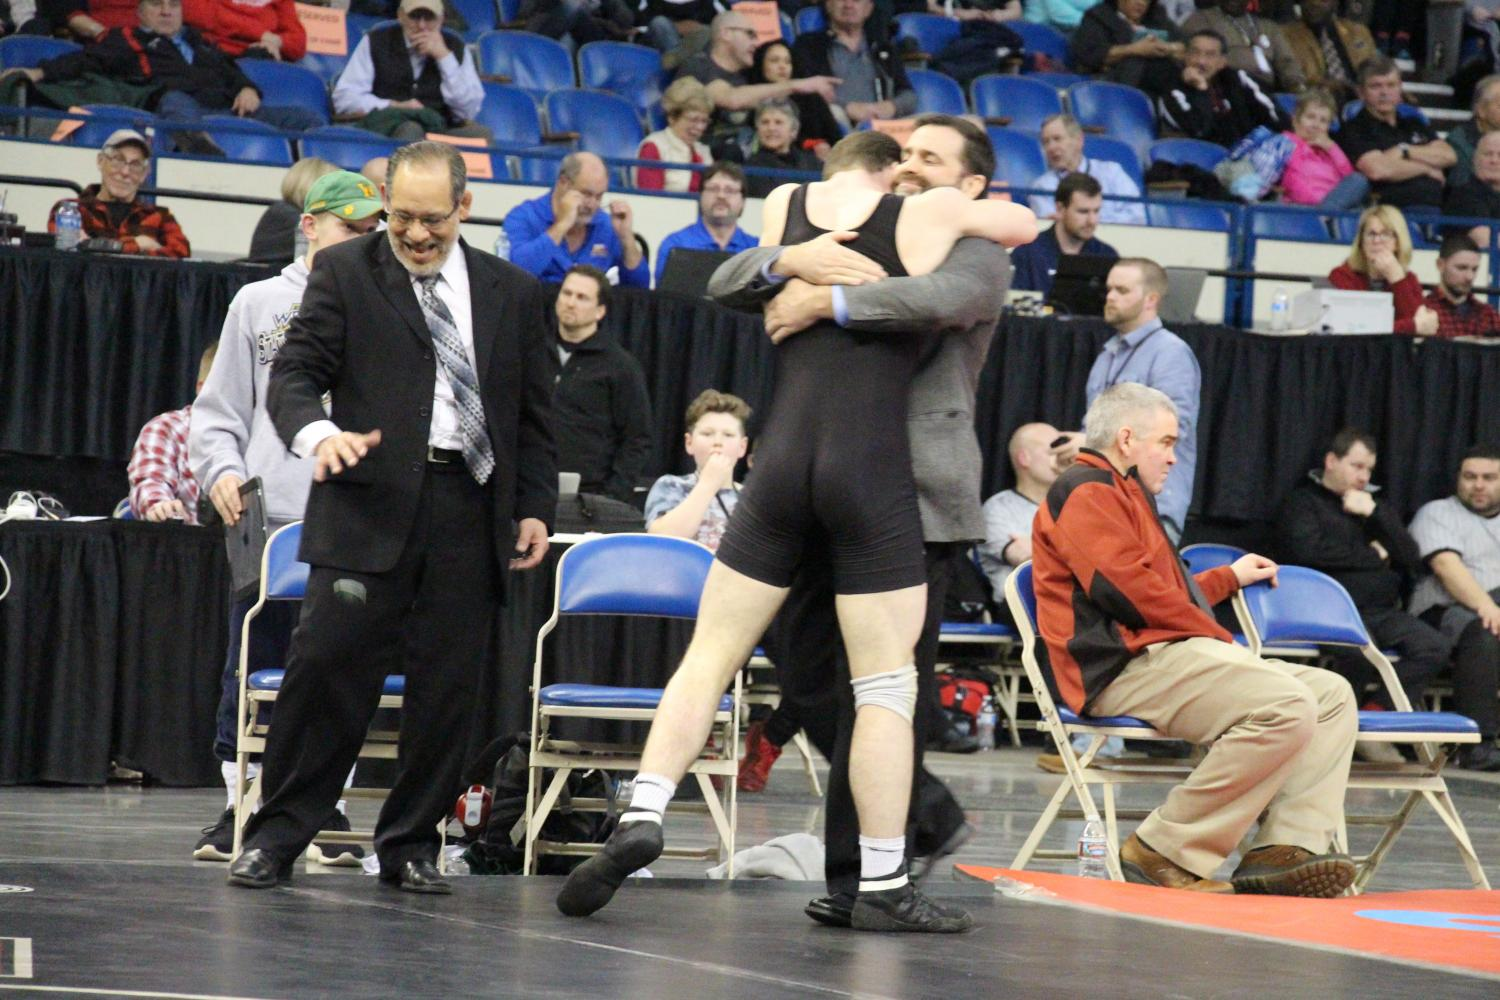 Celebrating after a pin with his father and head coach for his first ever state title, sophomore Sean Harman is overcome with emotion as he looks towards the crowd. Sean's title came in the class 6A 152 pound weight class, and he is only the second Harman ever to win a wrestling state championship.